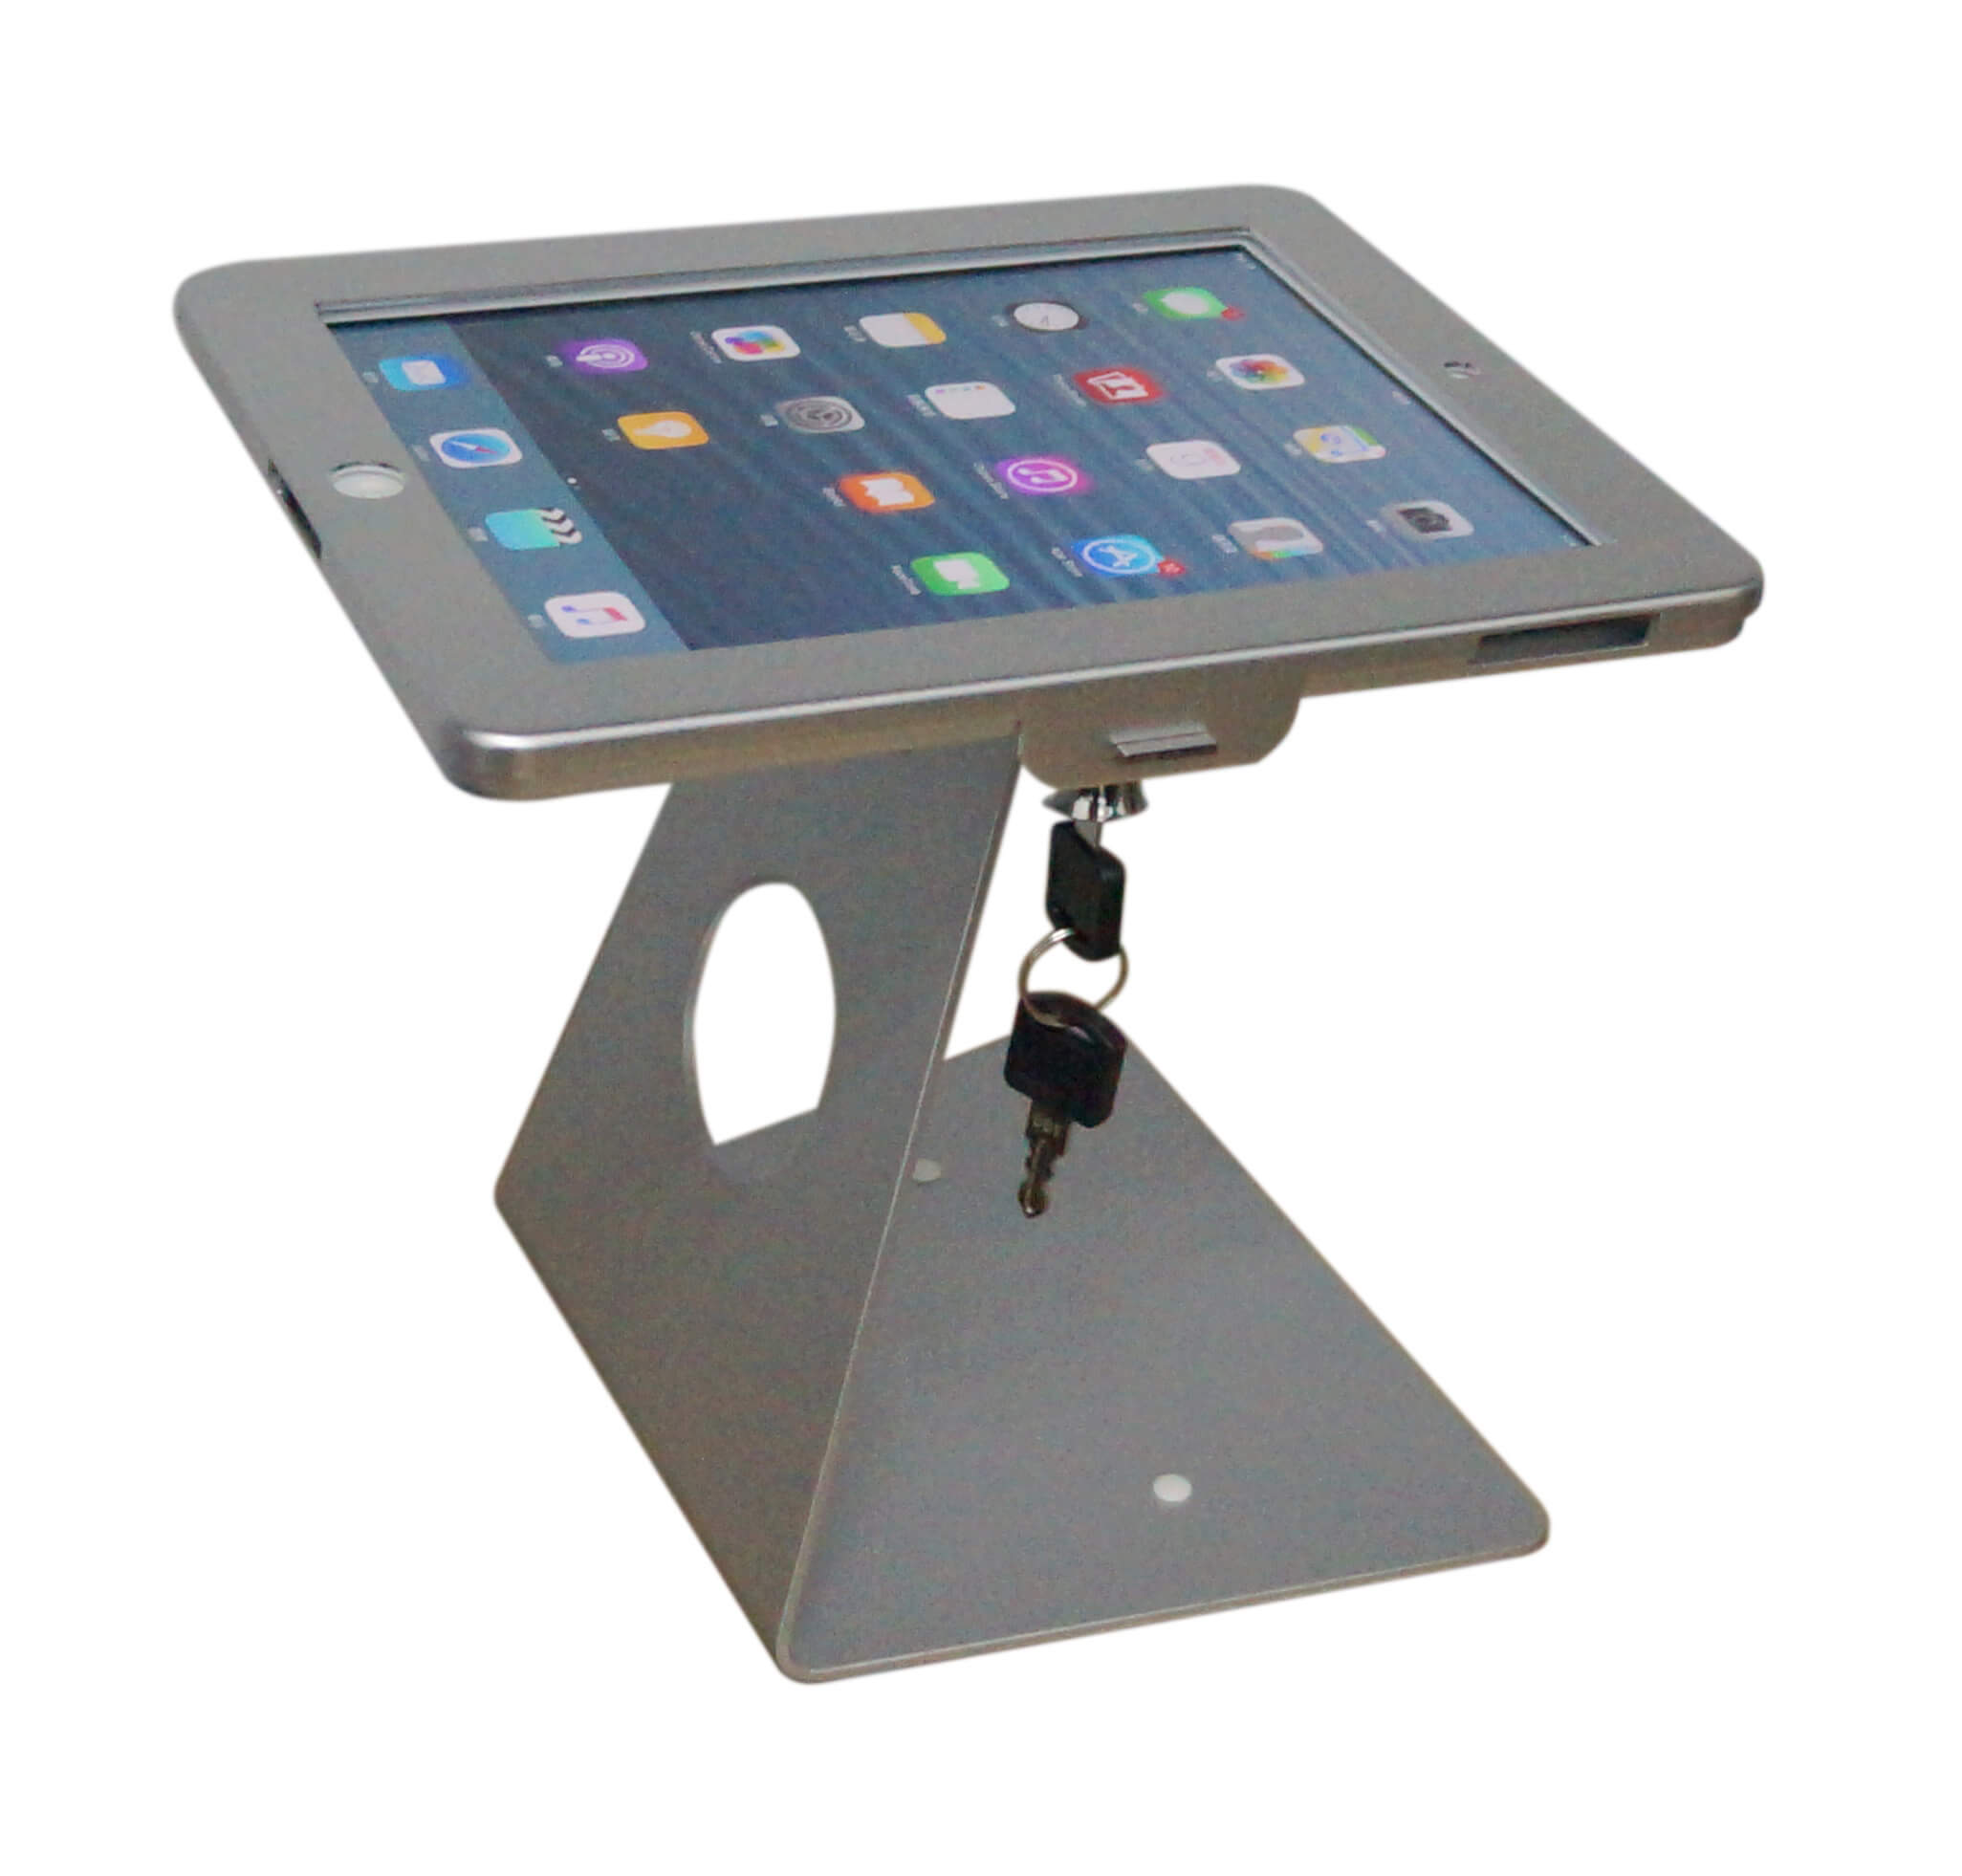 P2412f Ipad Tabletop Stand Tv Wall Mount Tv Bracket